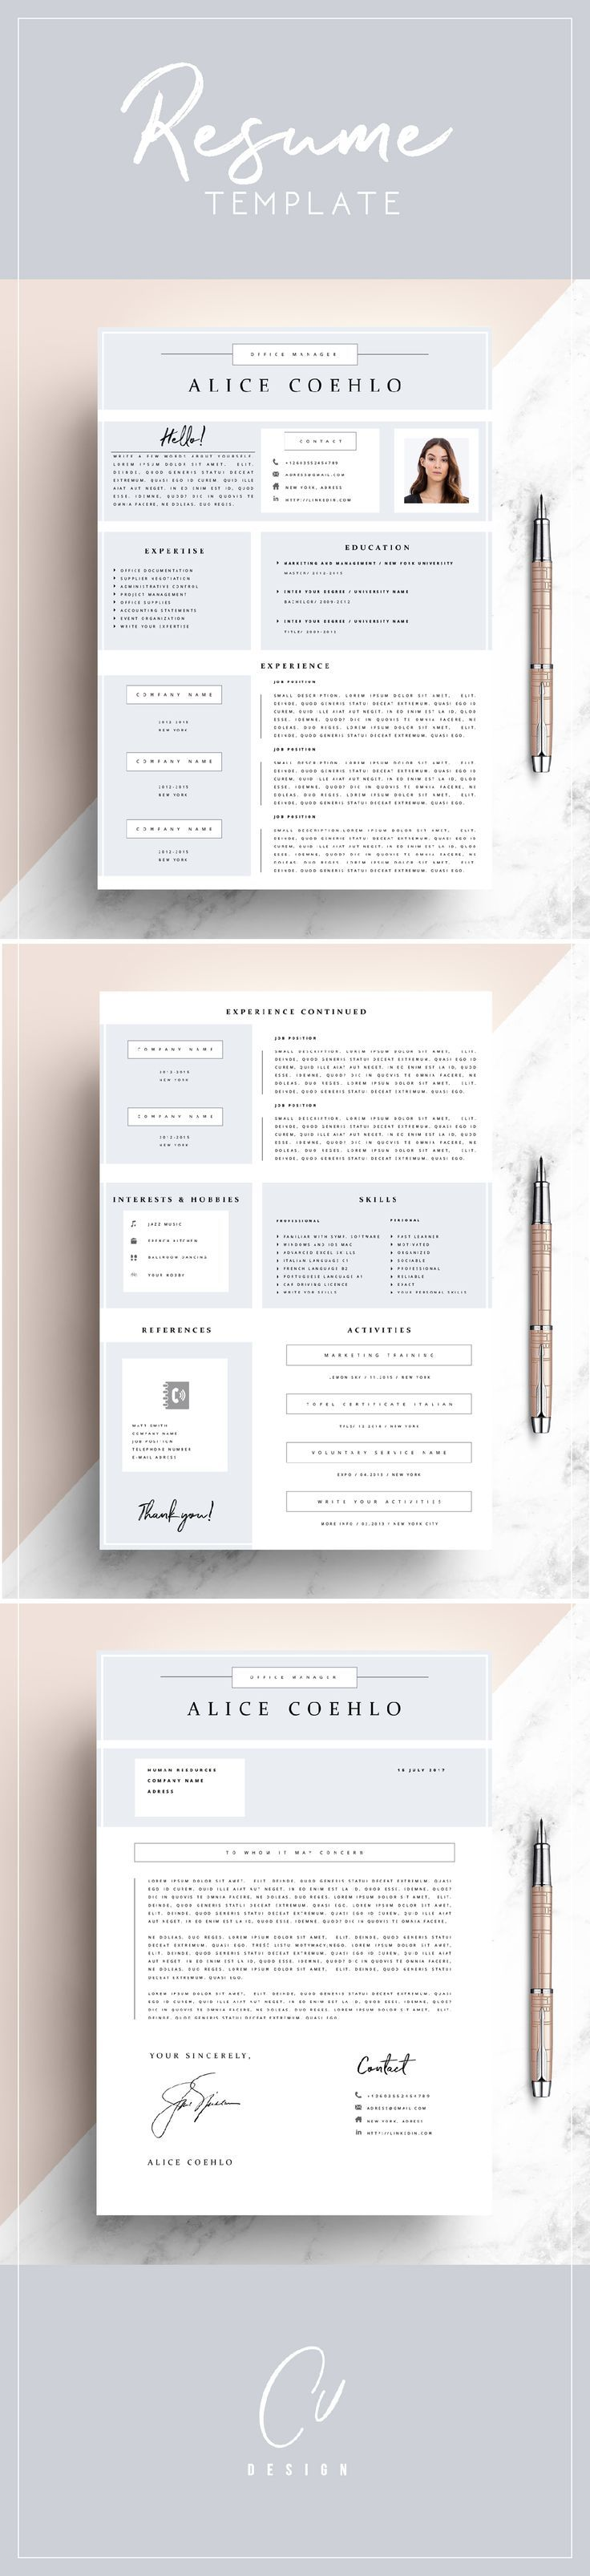 check out this amazing ms word editable resume template - Editable Resume Template